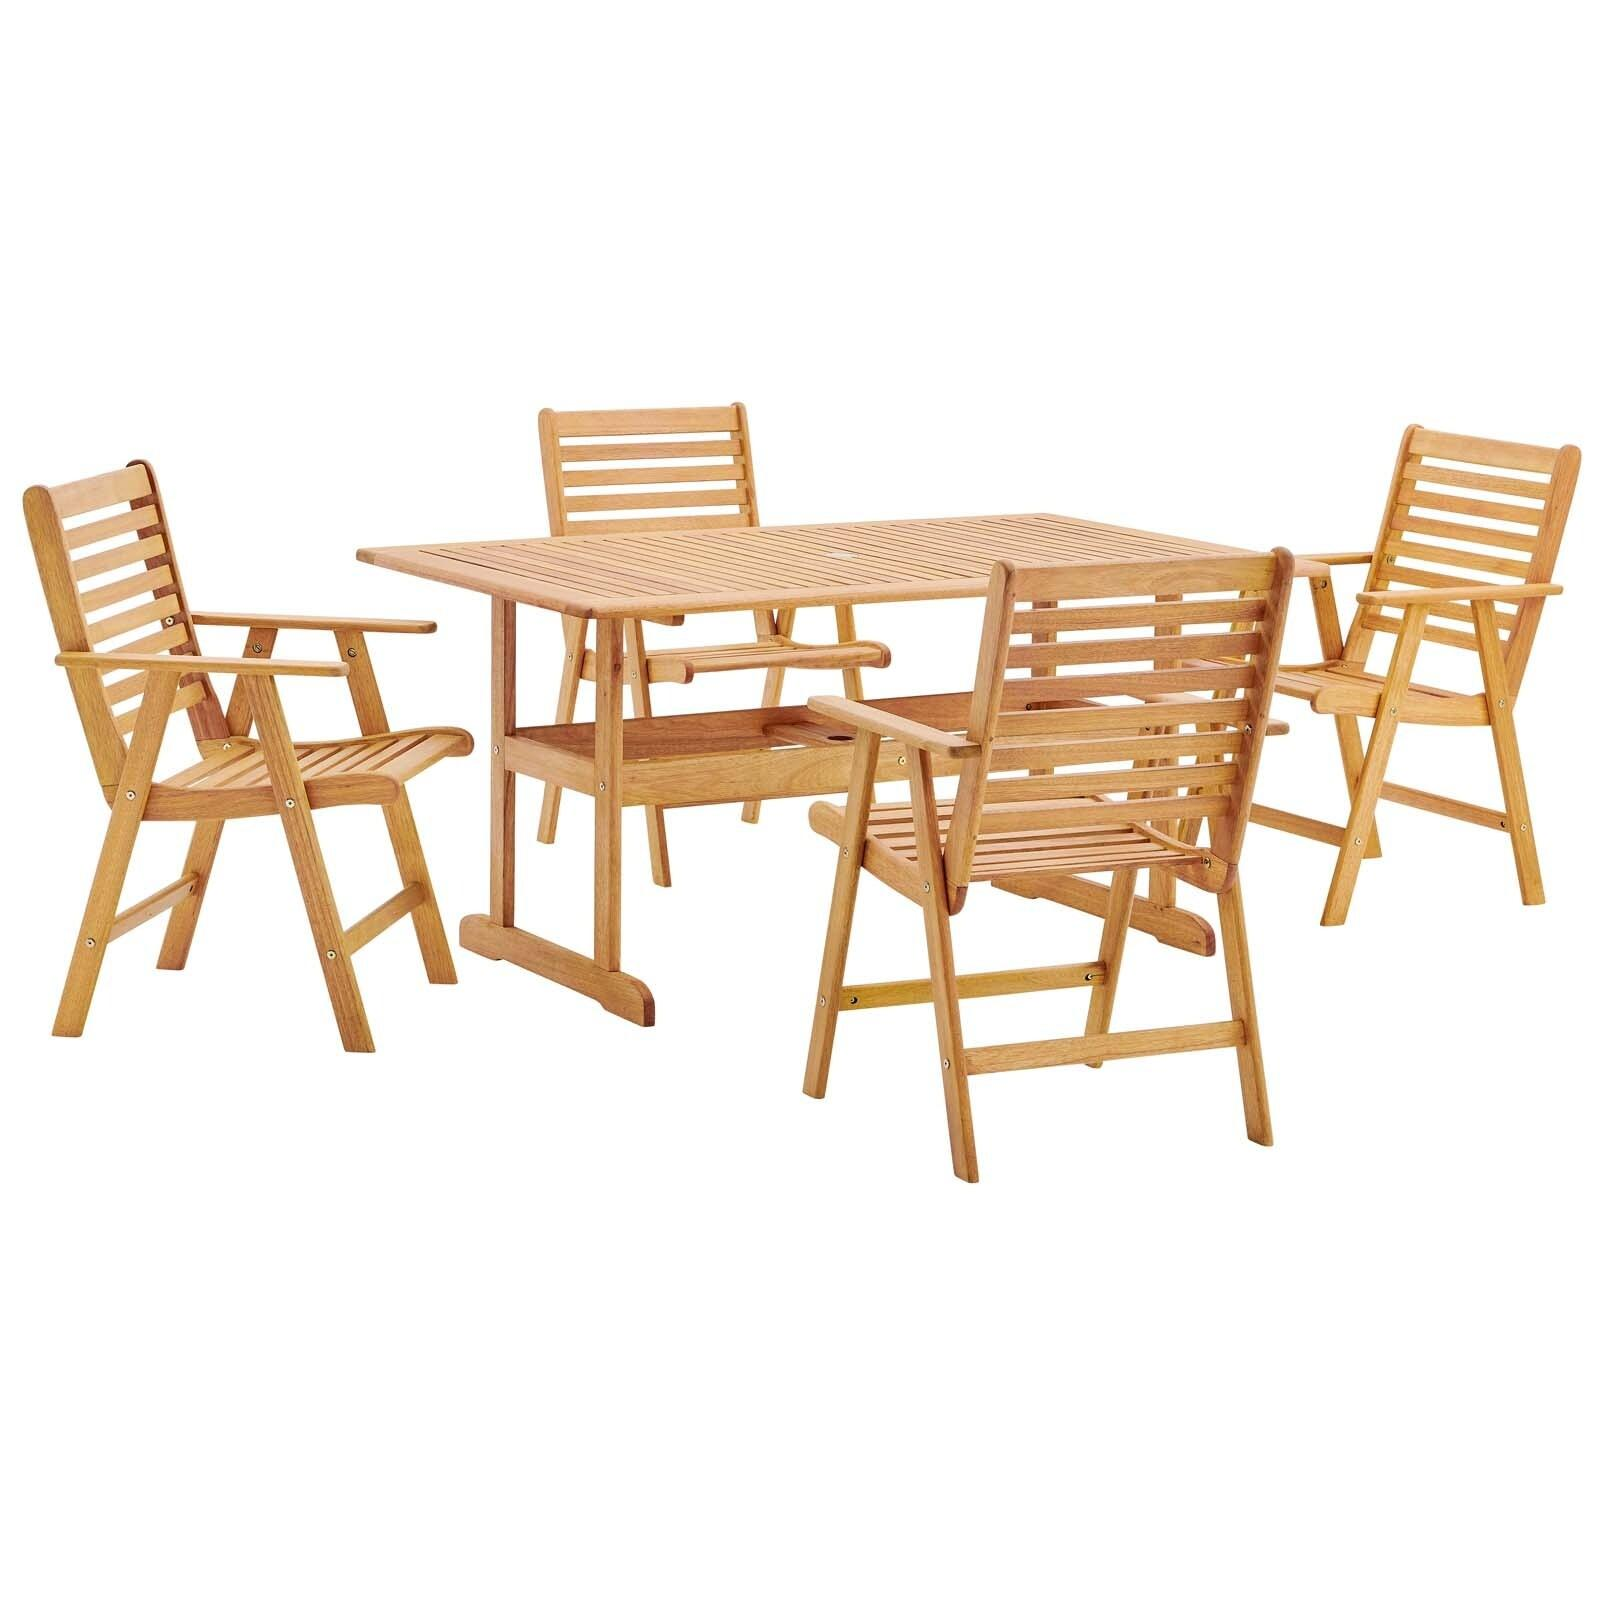 Hatteras Outdoor Patio Eucalyptus Wood Dining Set with 59